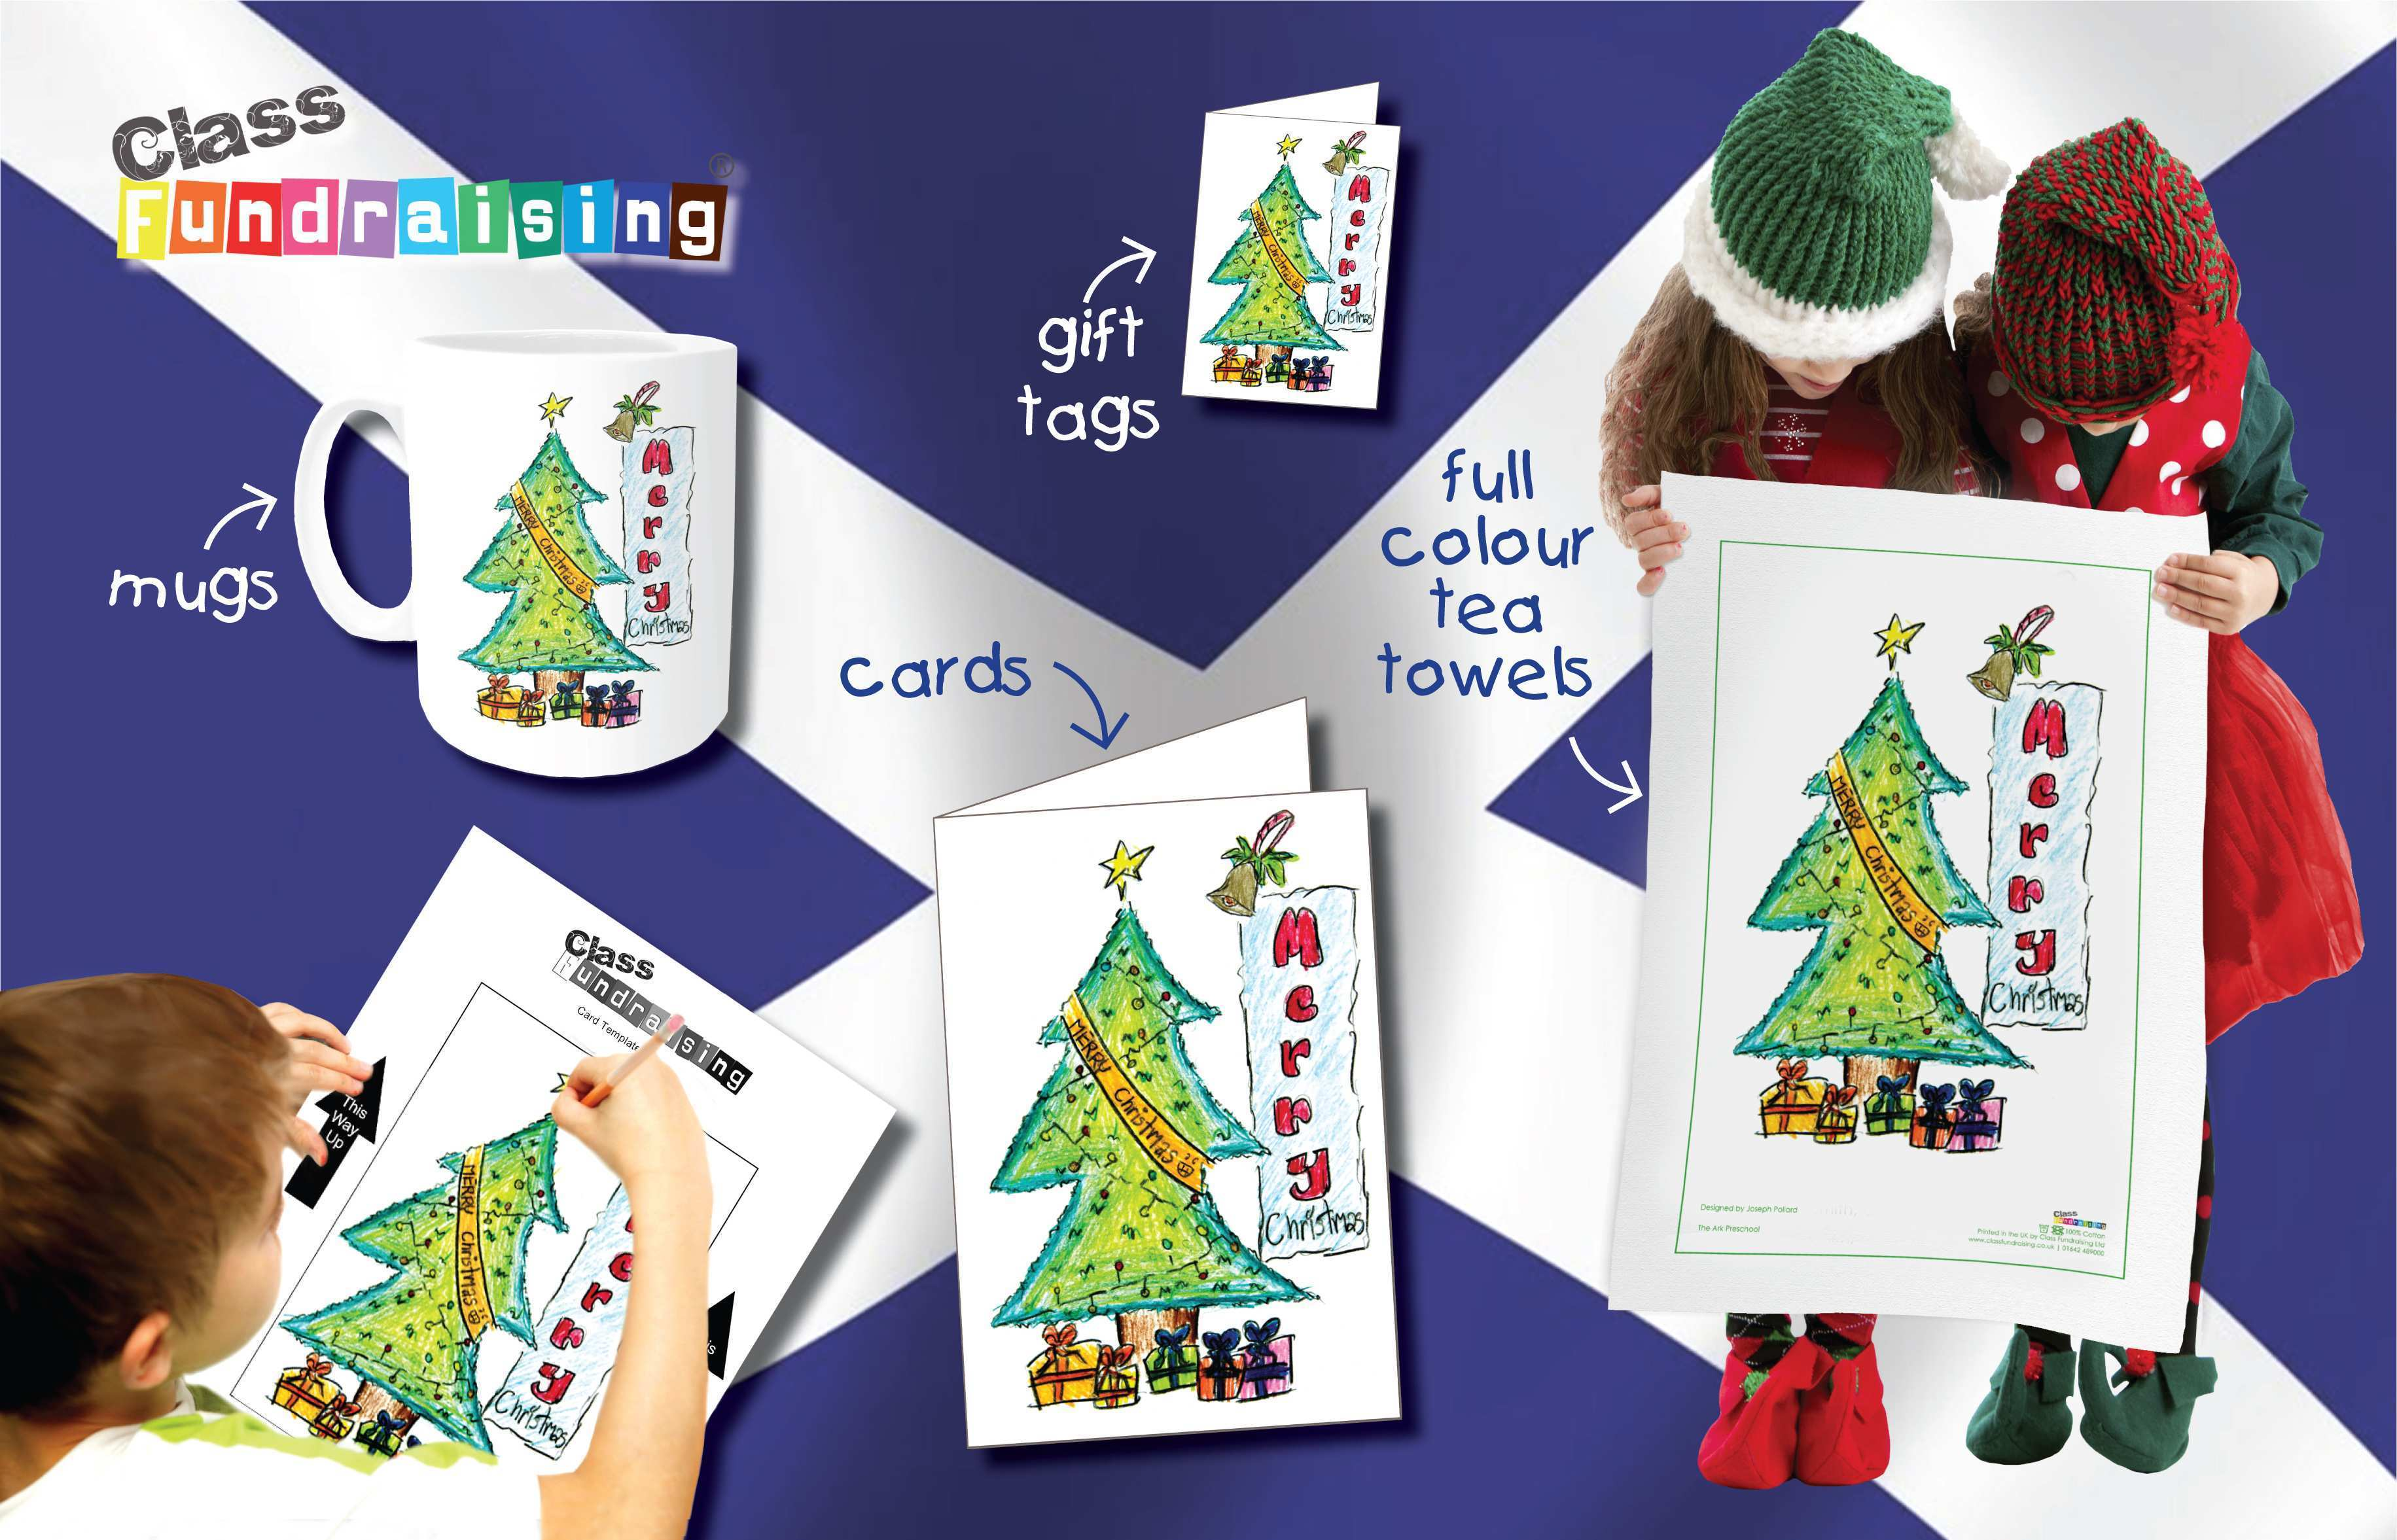 63 Christmas Card Template Class Fundraising With Stunning Design By Christmas Card Template Class Fundraising Cards Design Templates